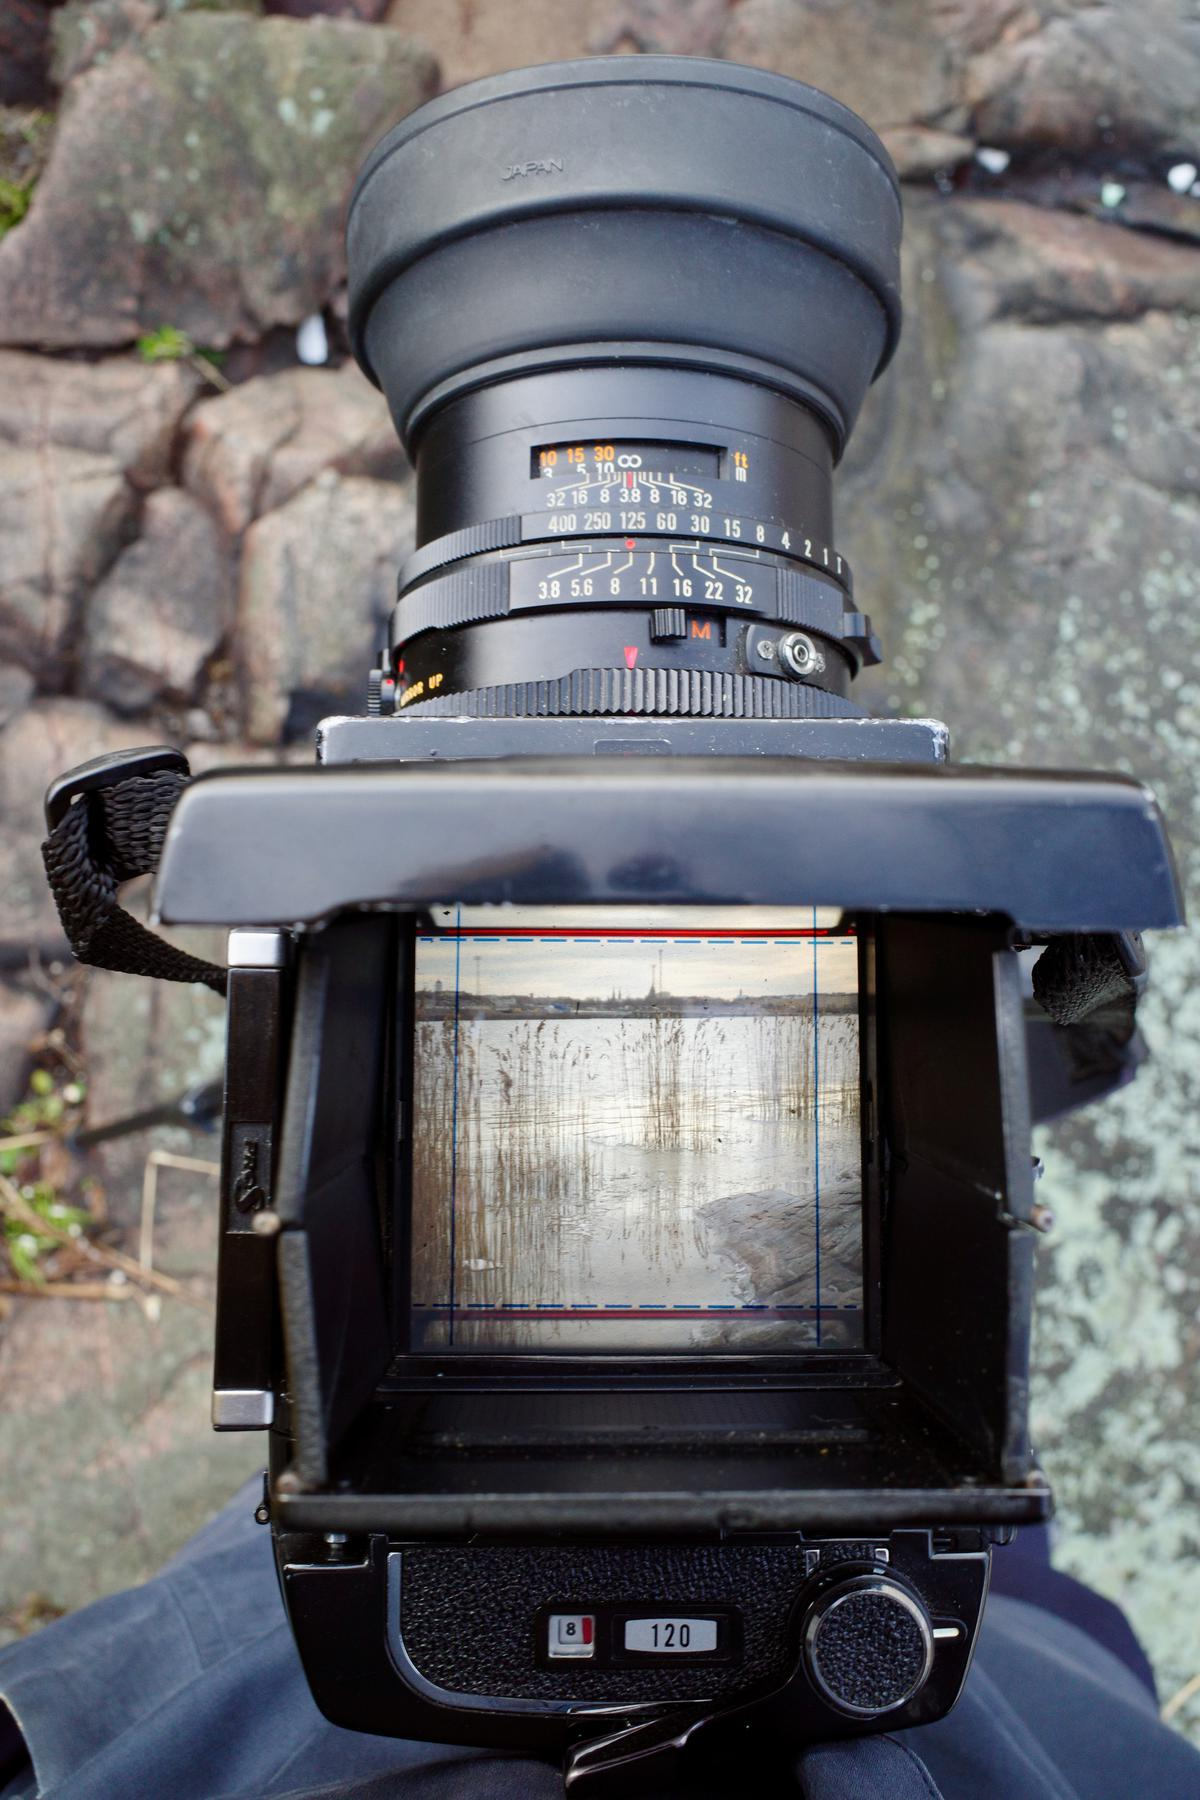 The medium-format camera seen from the above. The viewfinder shows a landscape with rocky seashore and reeds in the front and a city in the background.